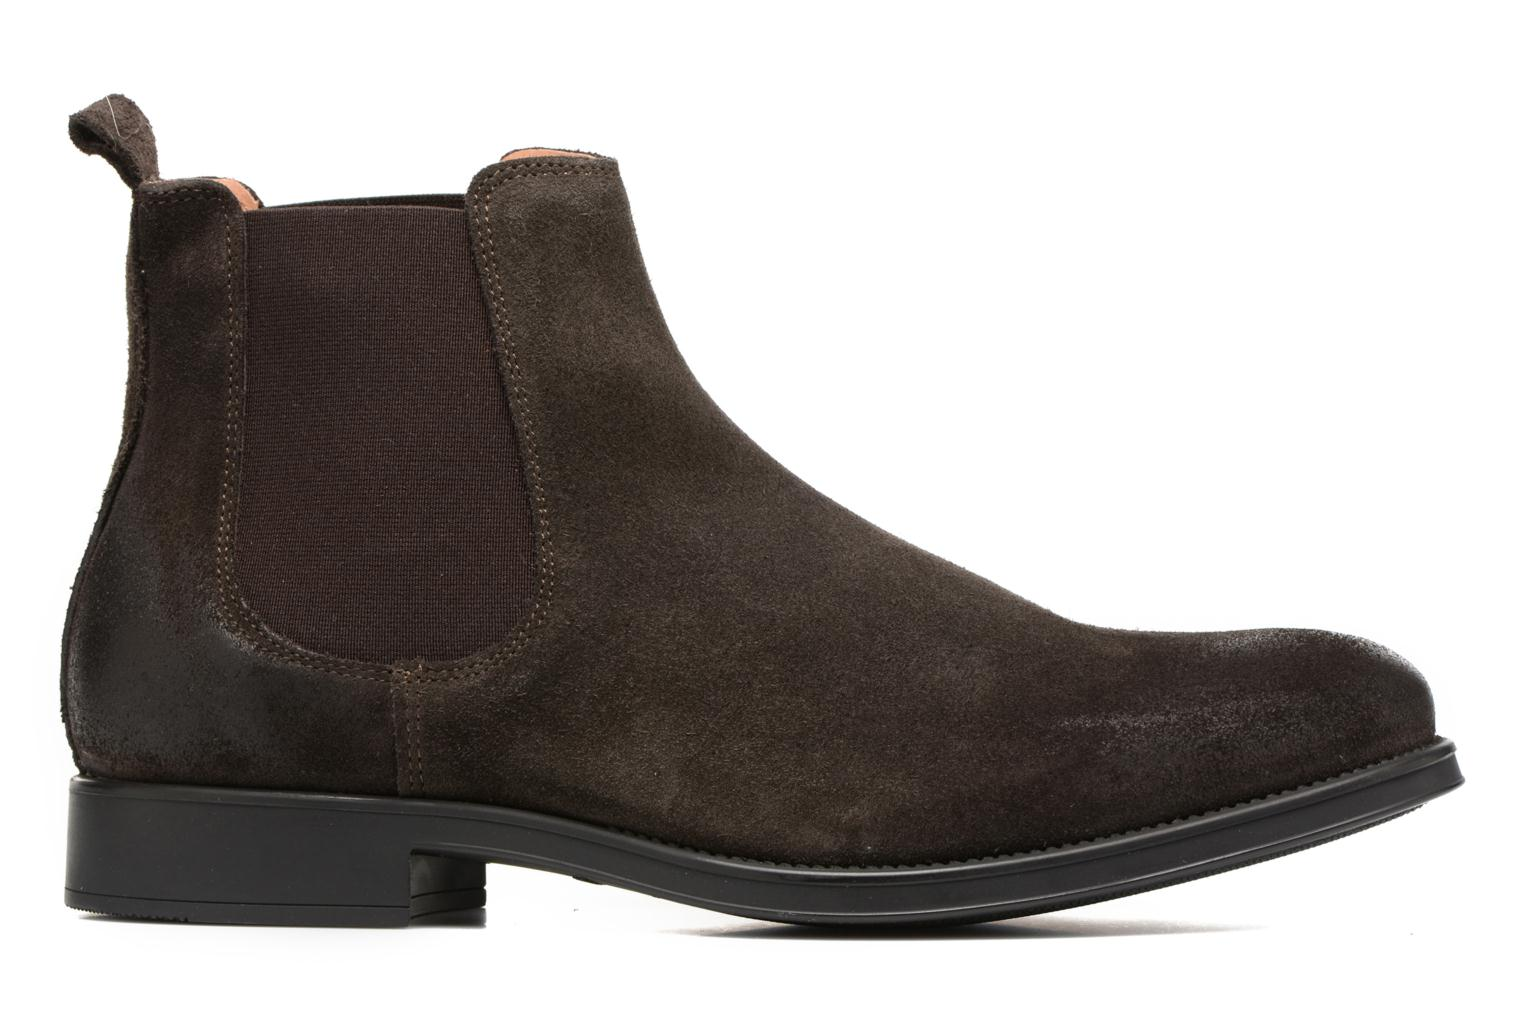 Bottines et boots Selected Homme Oliver suede chelsea boot Marron vue derrière